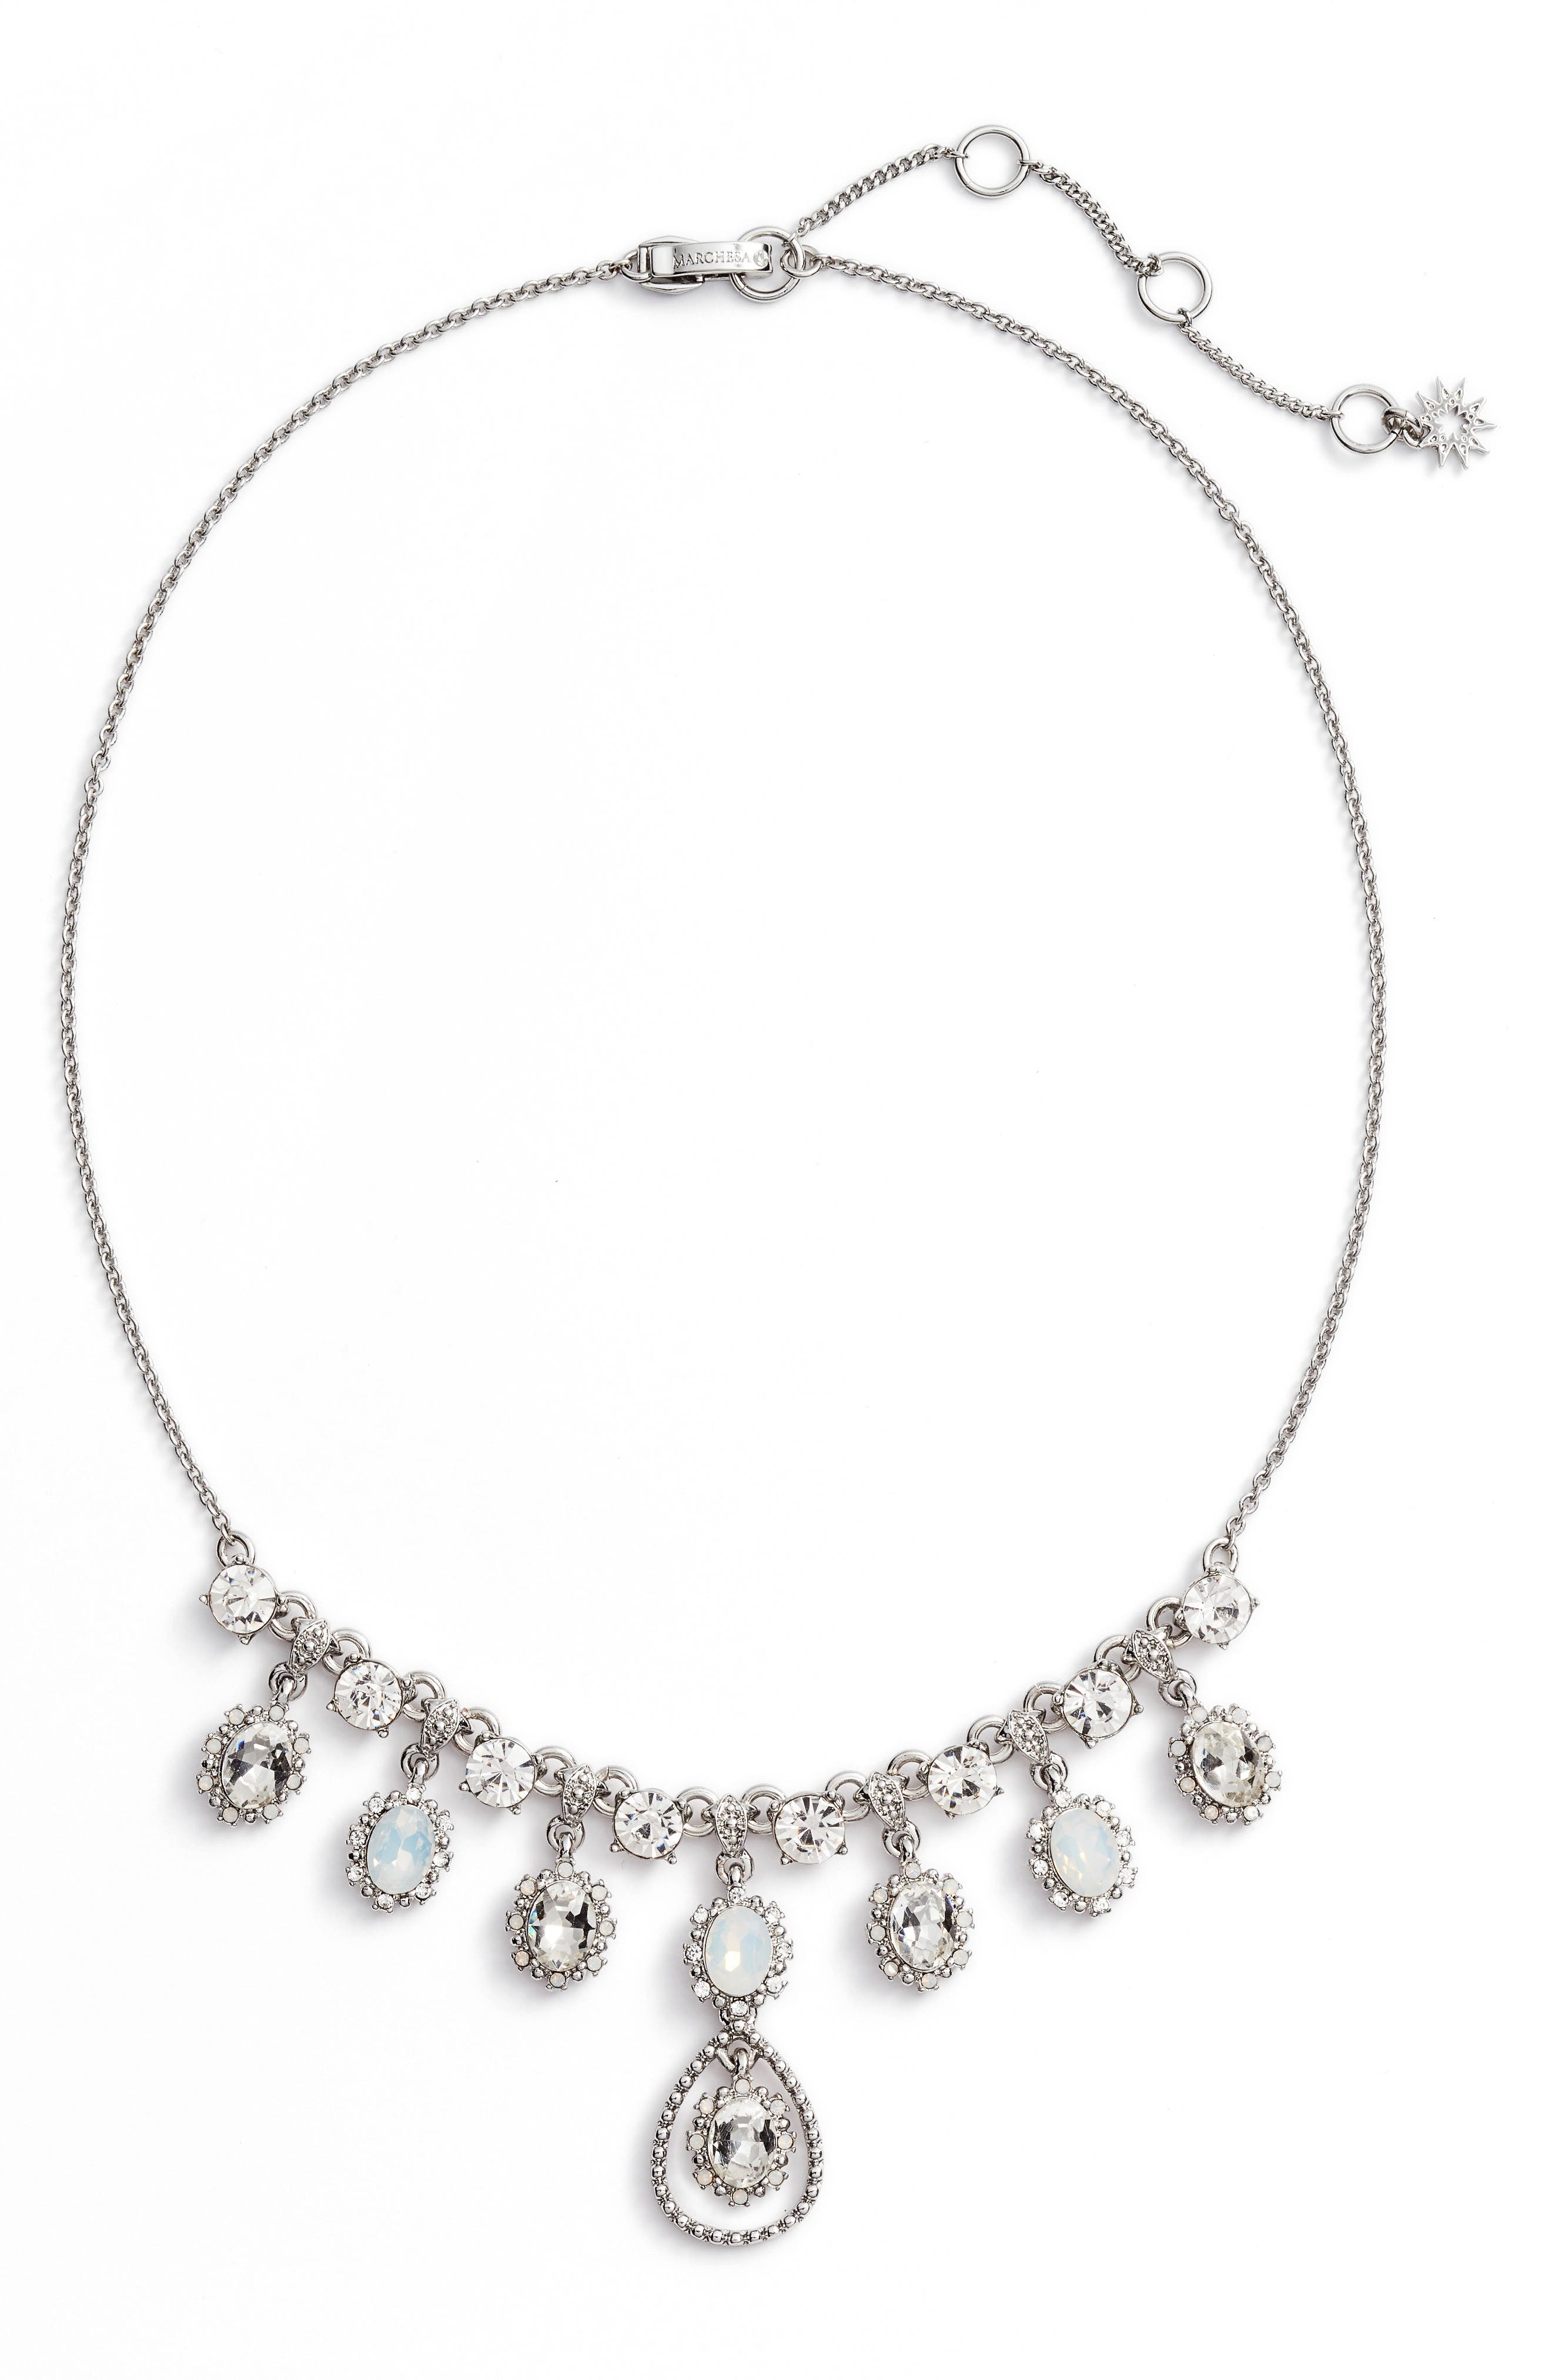 Main Image - Marchesa Crystal Frontal Necklace